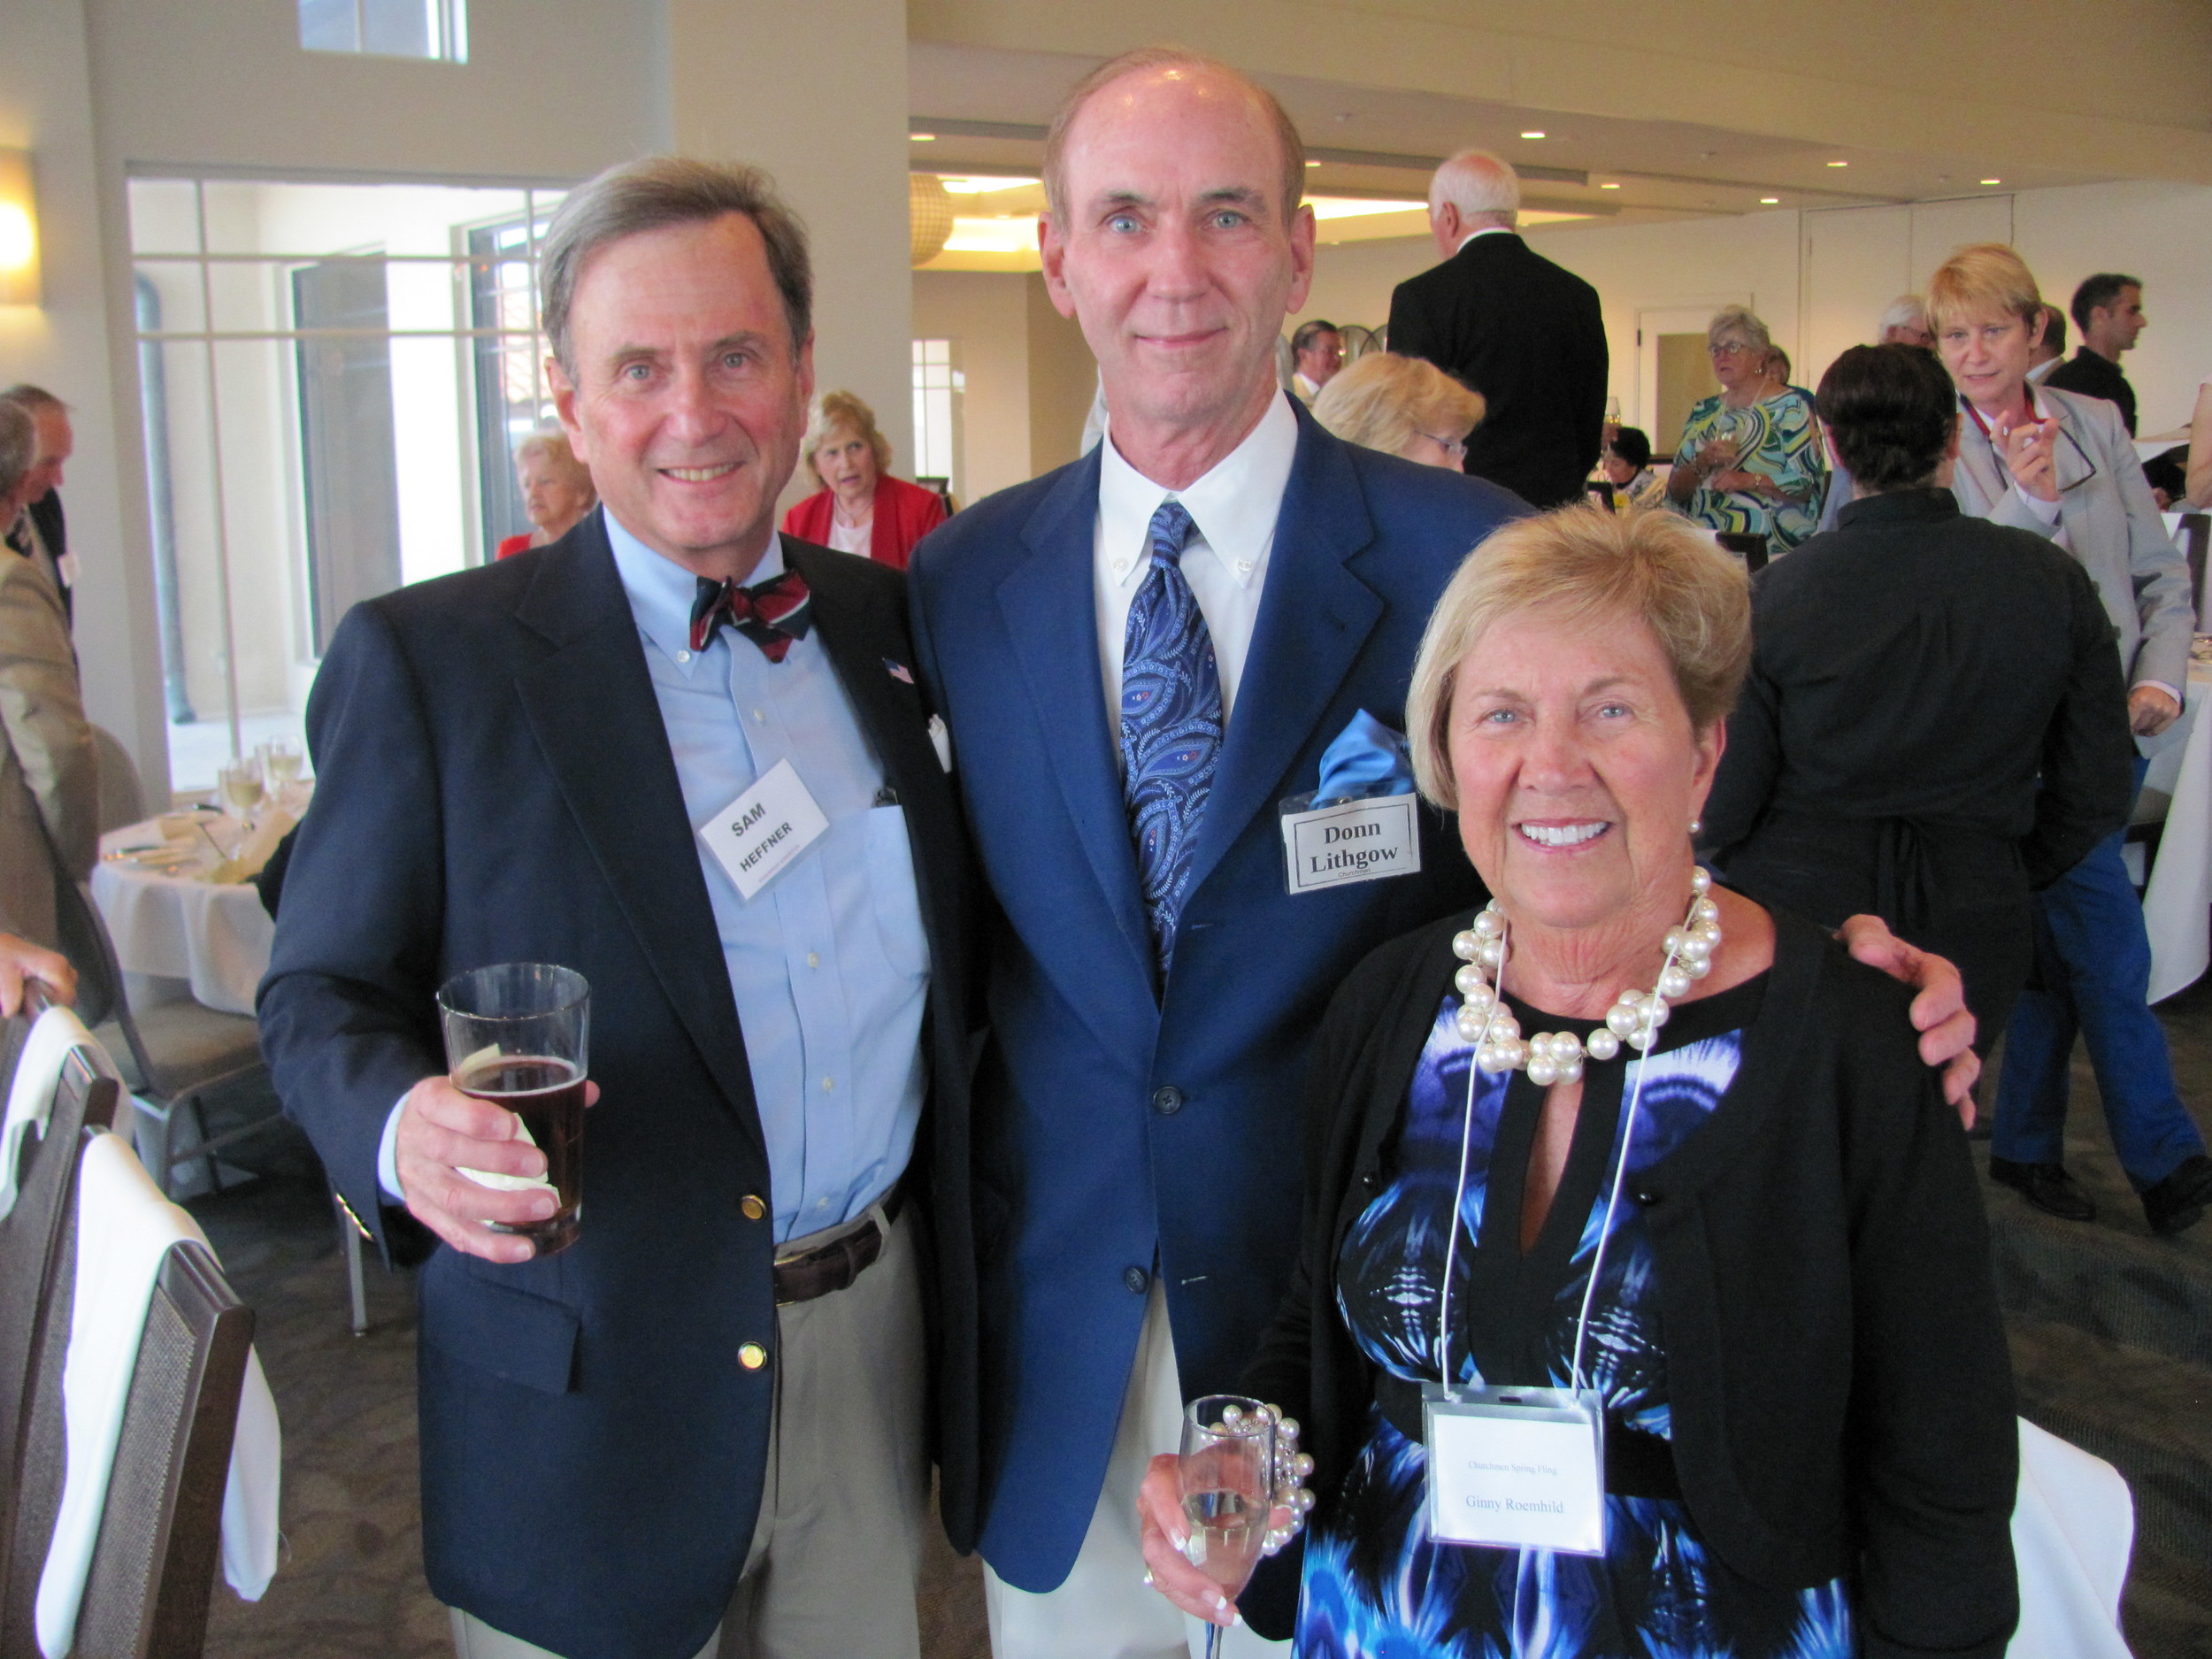 Sam Heffner, Donn Lithgow and Ginny Roemhild